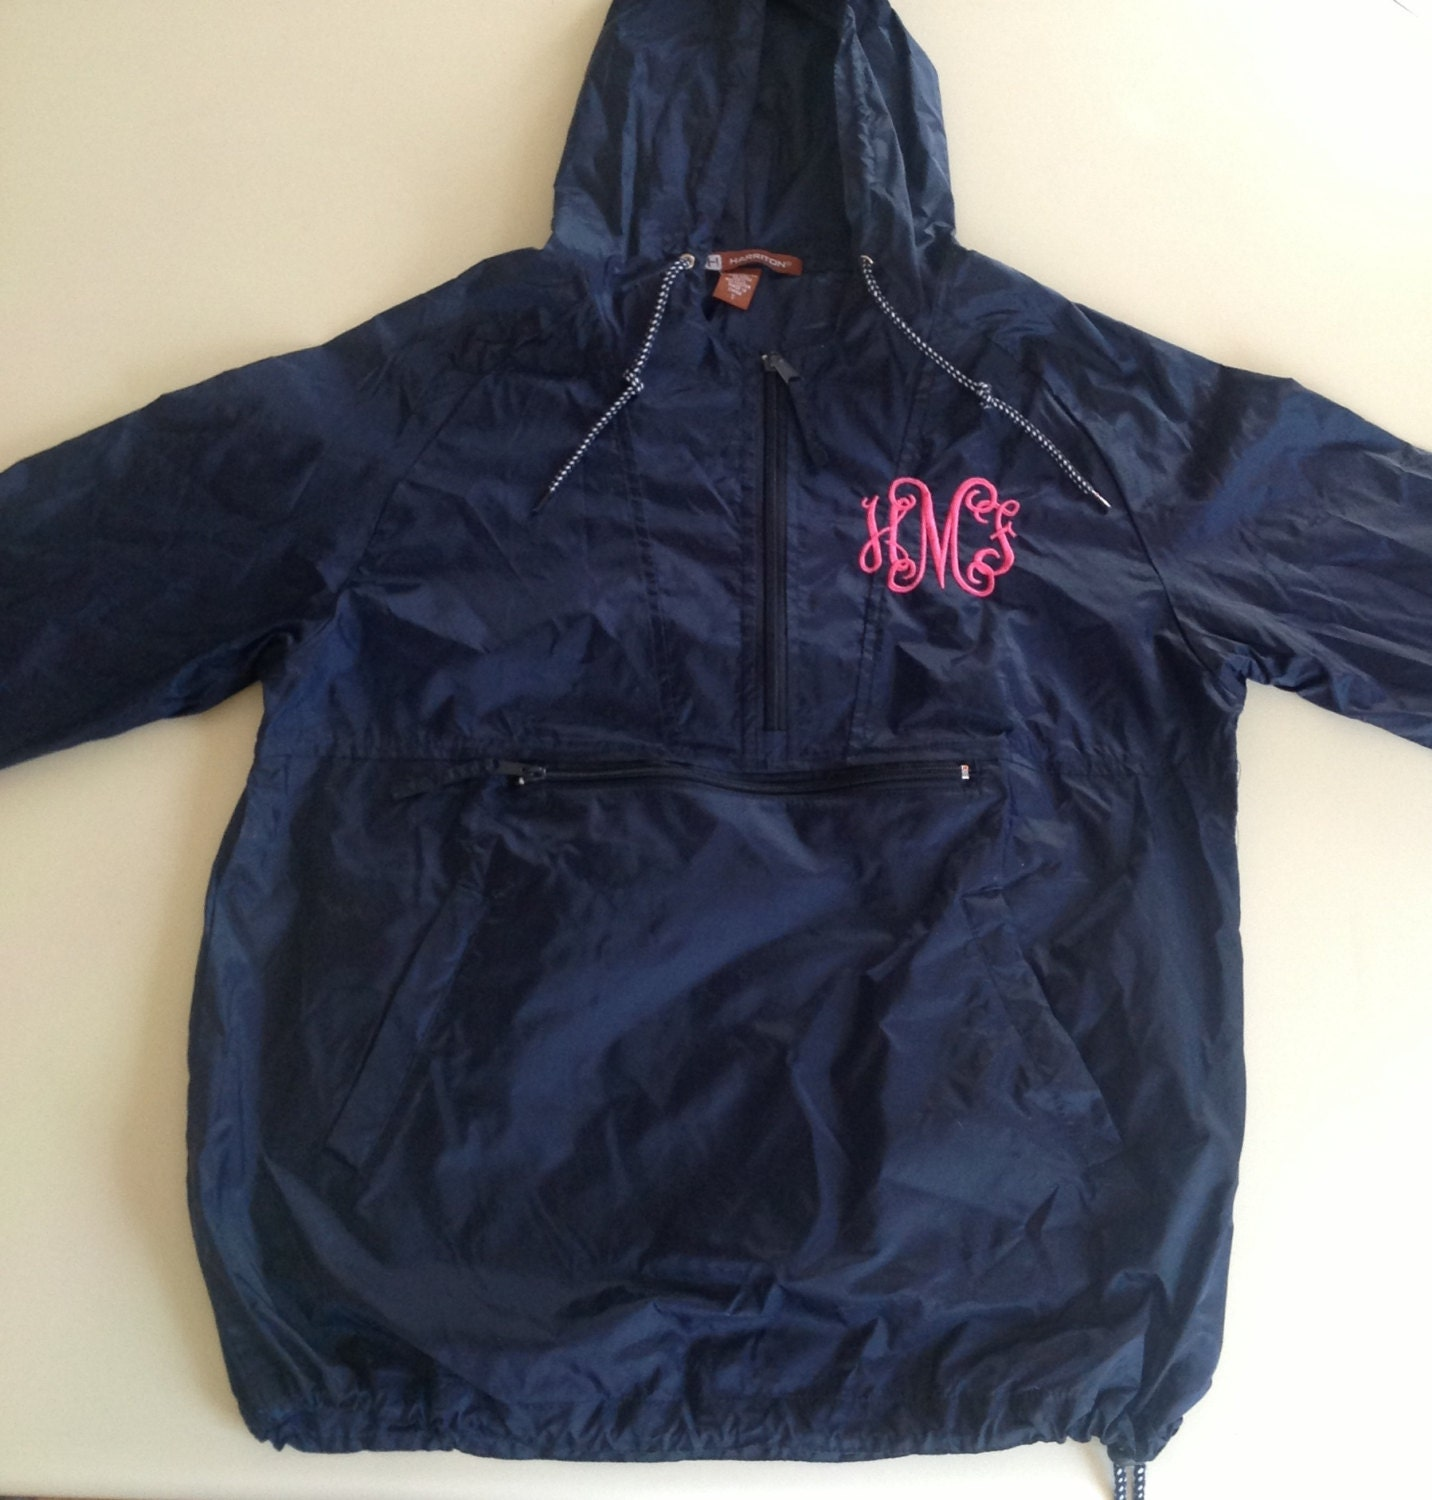 items similar to monogrammed rain jacket on etsy